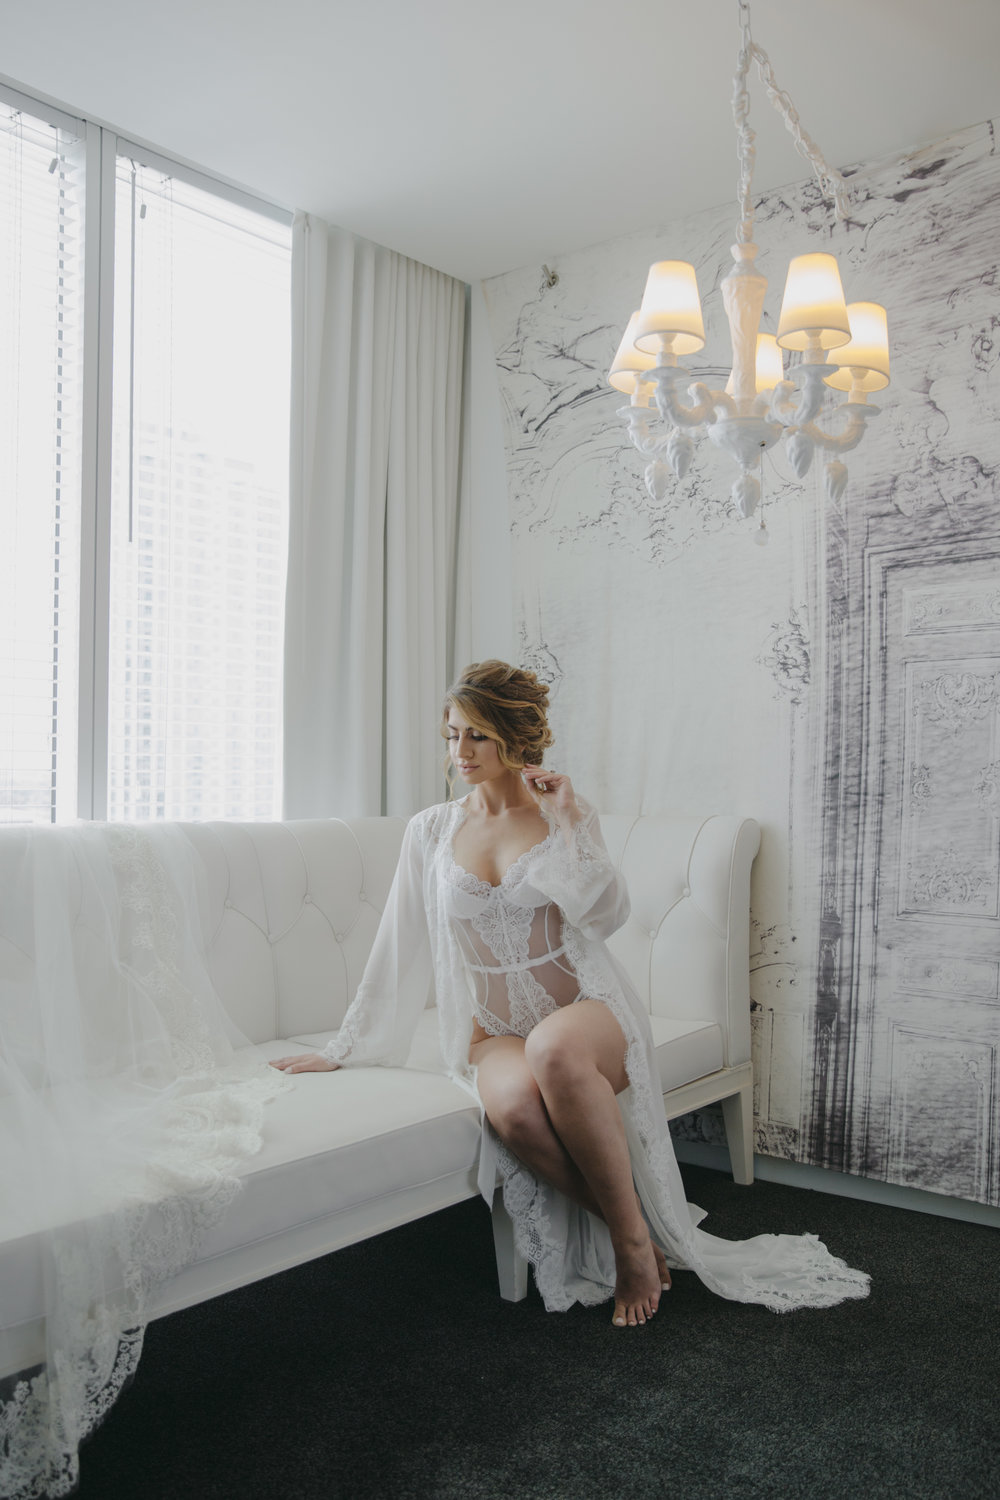 Luxury Destination Wedding Planning and Event Design by  Andrea Eppolito Events  · Photos by  Stephen Salazar  · Bride in white lace negligee.  Boudoure shoot.